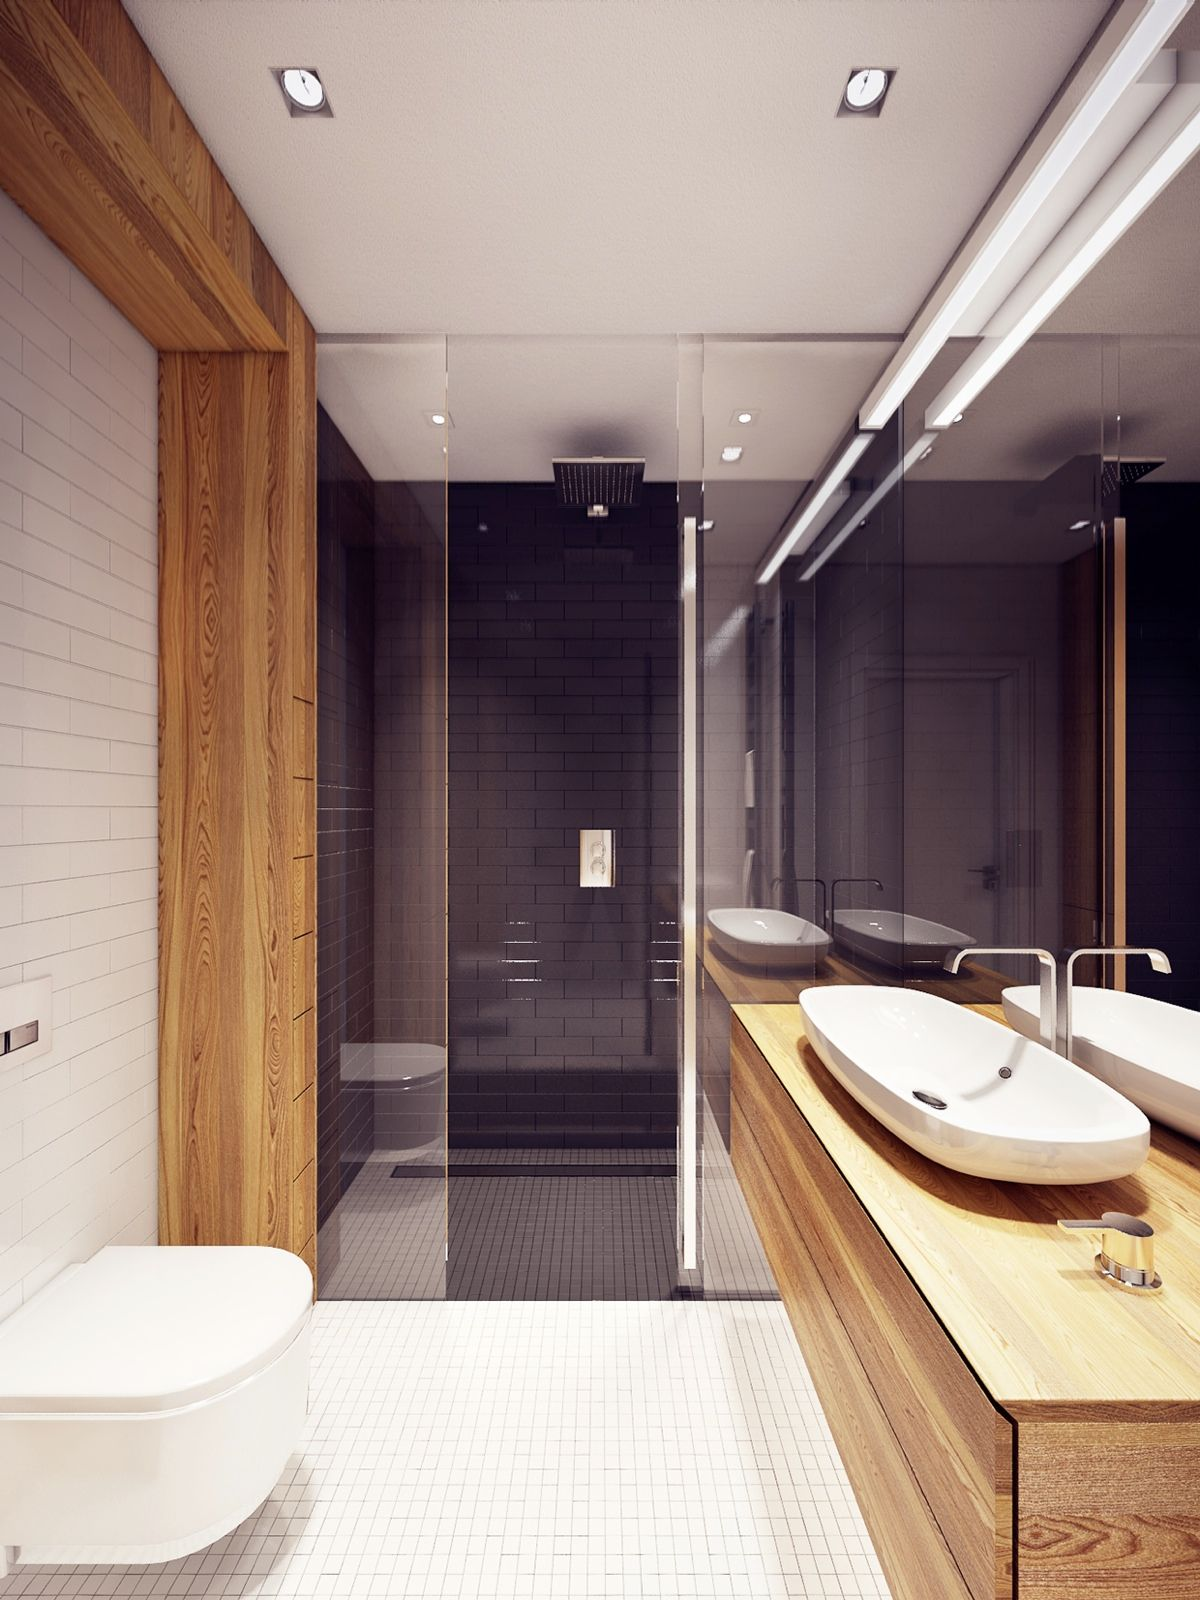 A Lively Contemporary Apartment Building Well Decorated and fortable The Bathroom White Mosaic Tile Toilet Floating Wooden White Sink Faucet Mirror